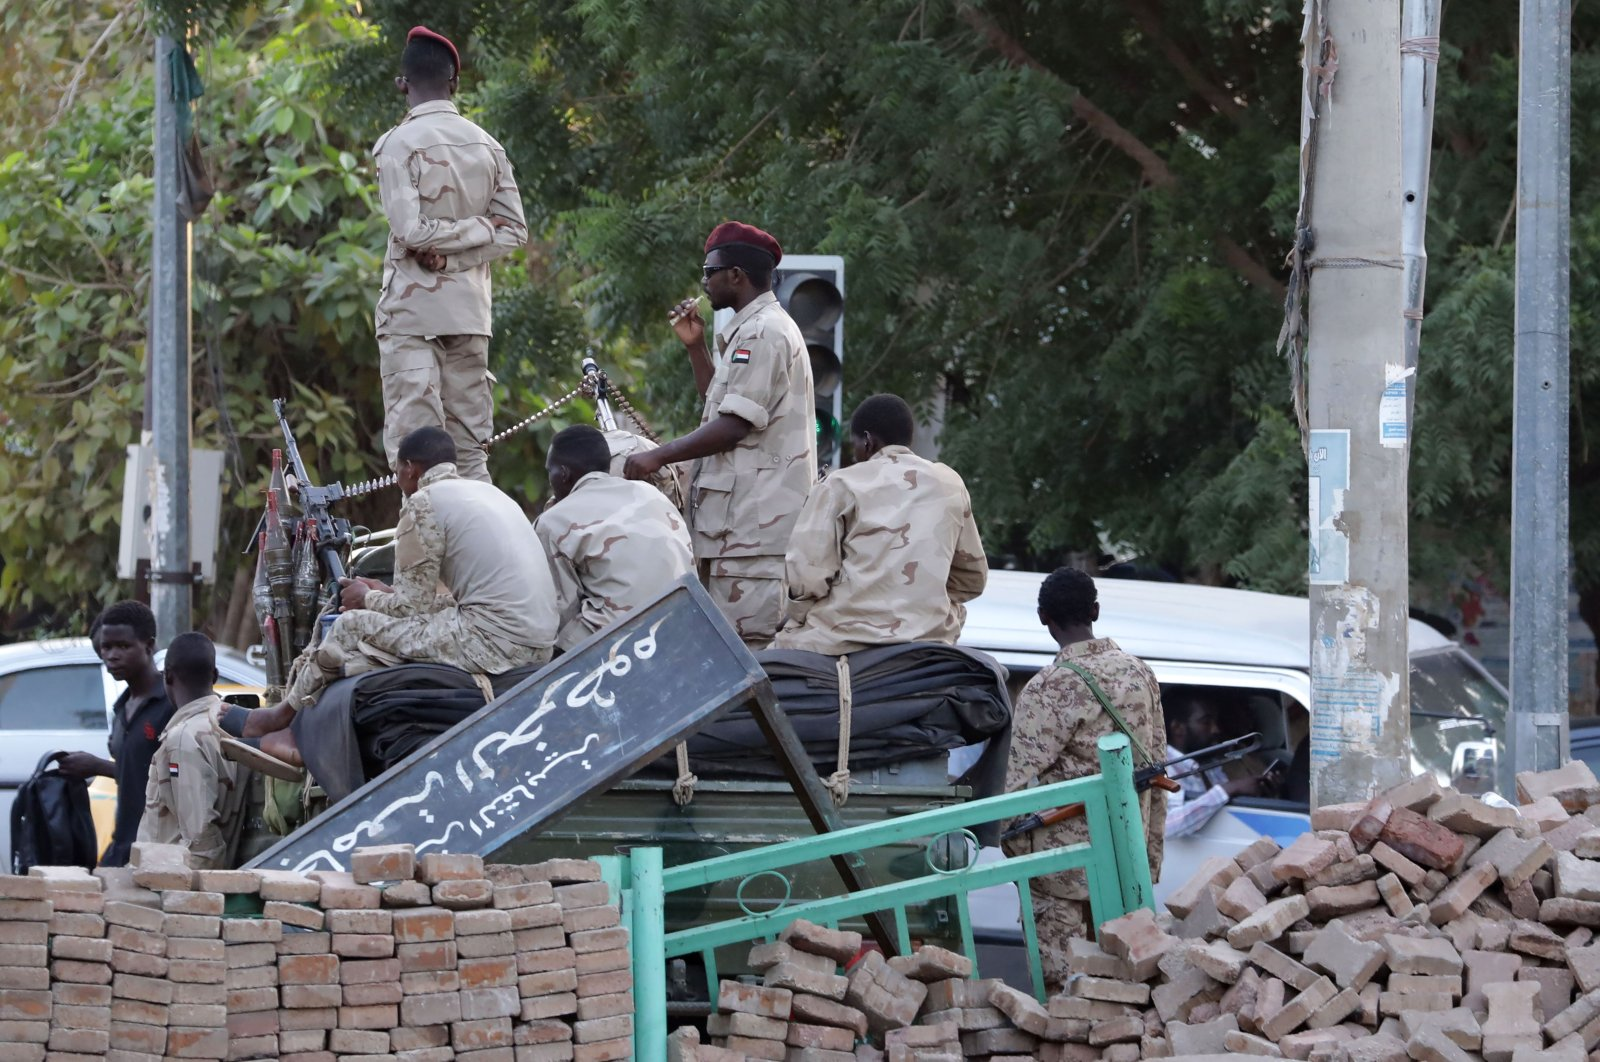 Sudanese soldiers keep watch near one of the entrances leading to the site of a sit-in, near the army headquarters, in Khartoum, Sudan, June 3, 2019. (EPA-EFE Photo)